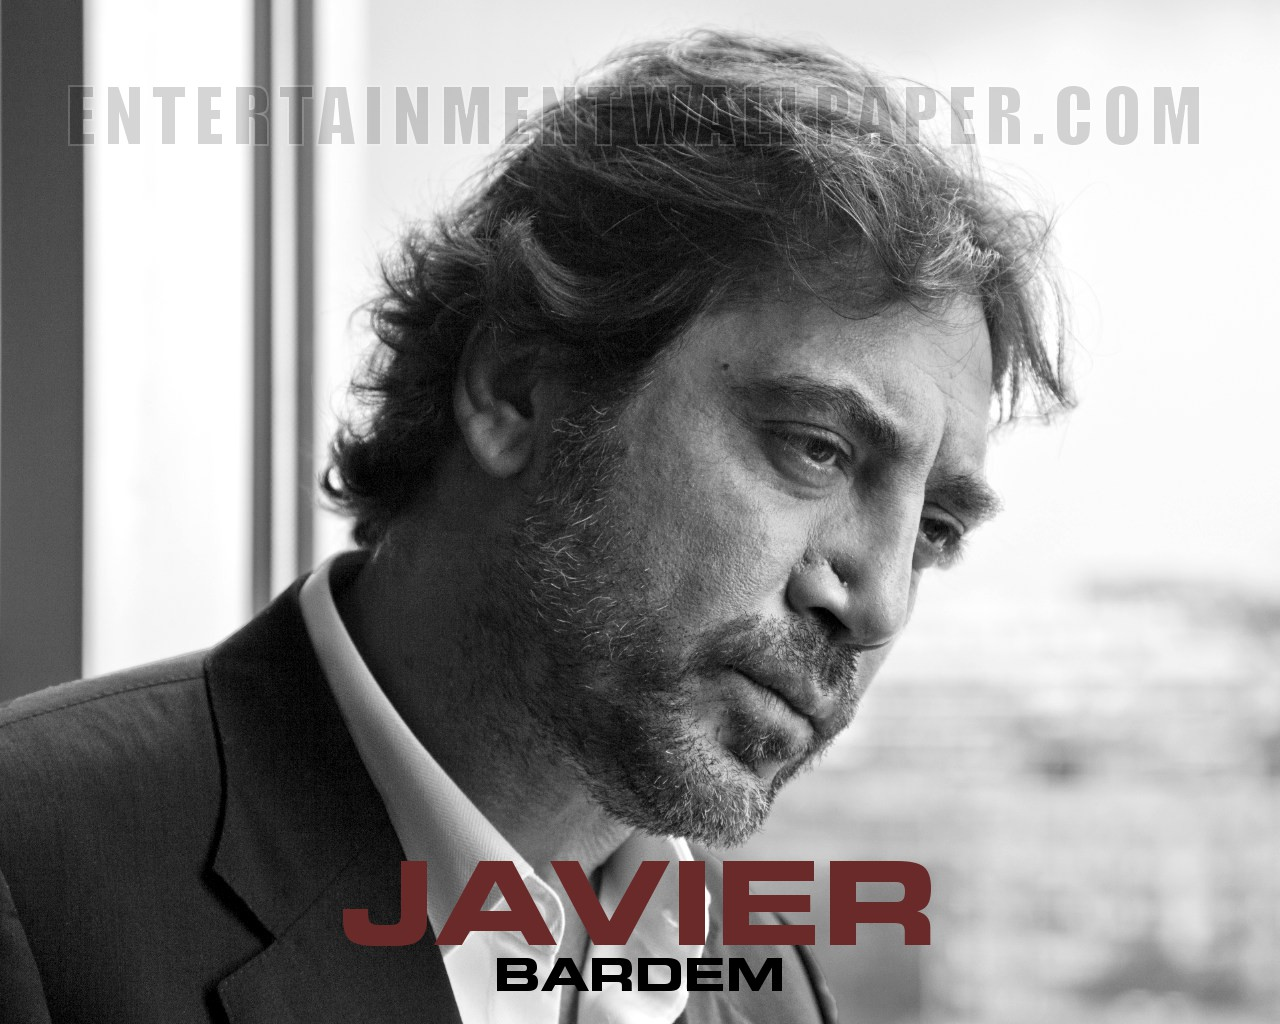 Javier Bardem Wallpaper - Original size, download now.